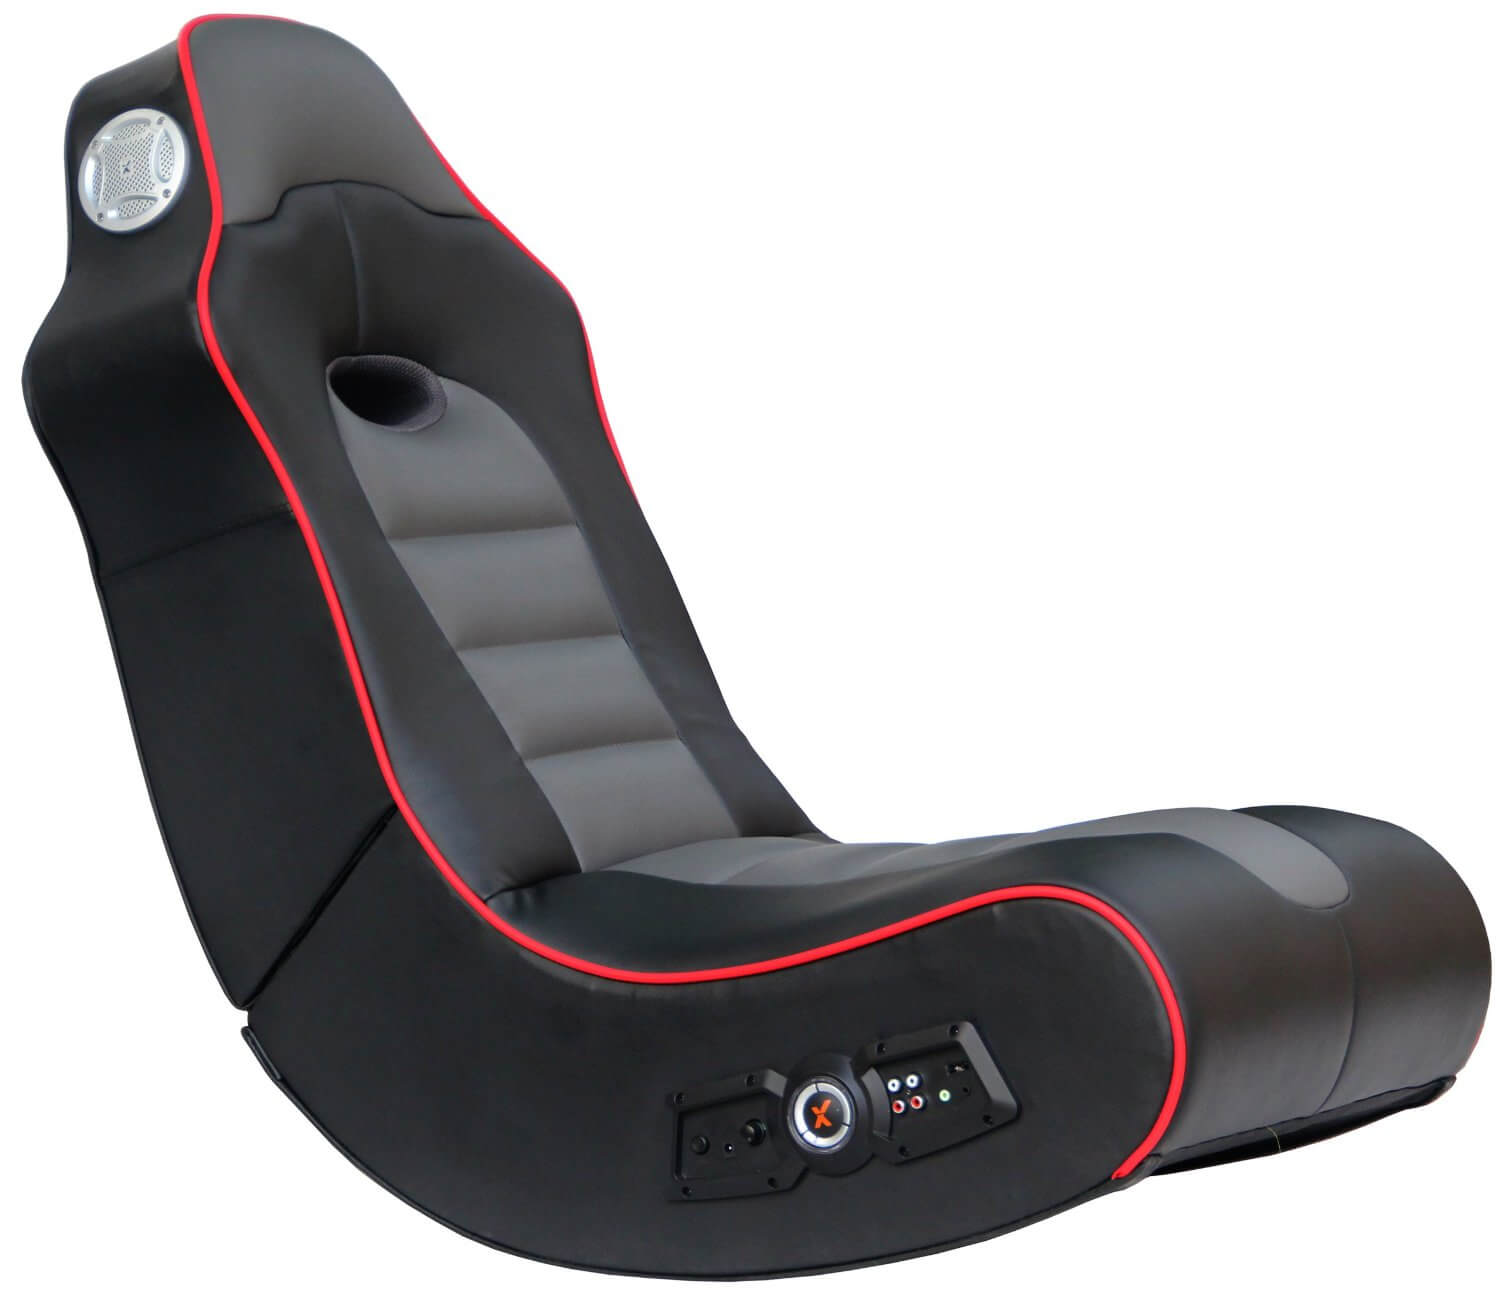 seat chair arozzi maximum milano product padded type gaming milanoukbk weight user pc